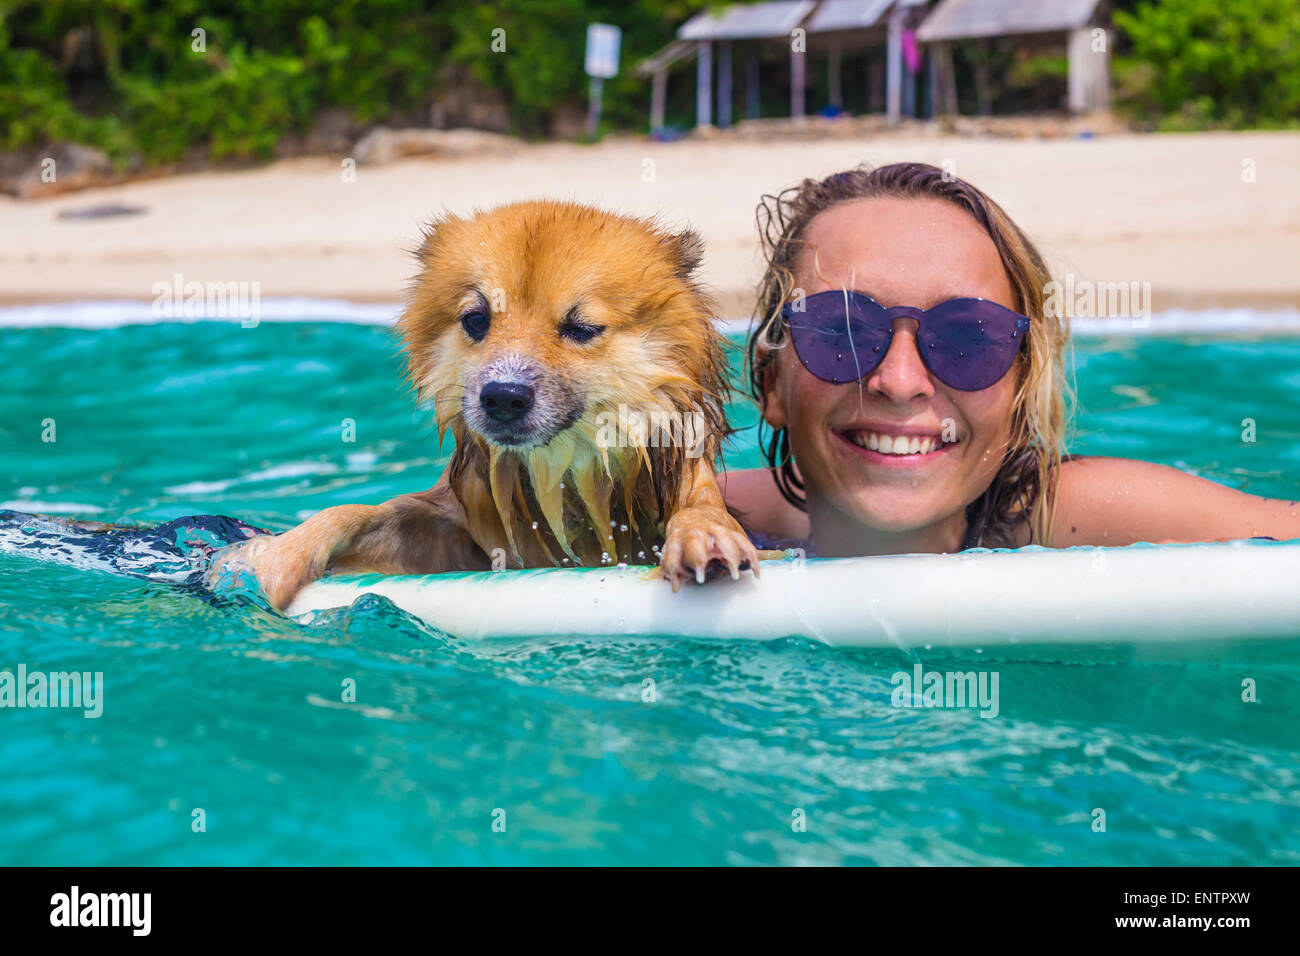 Surfer girl and funny dog in ocean water. - Stock Image